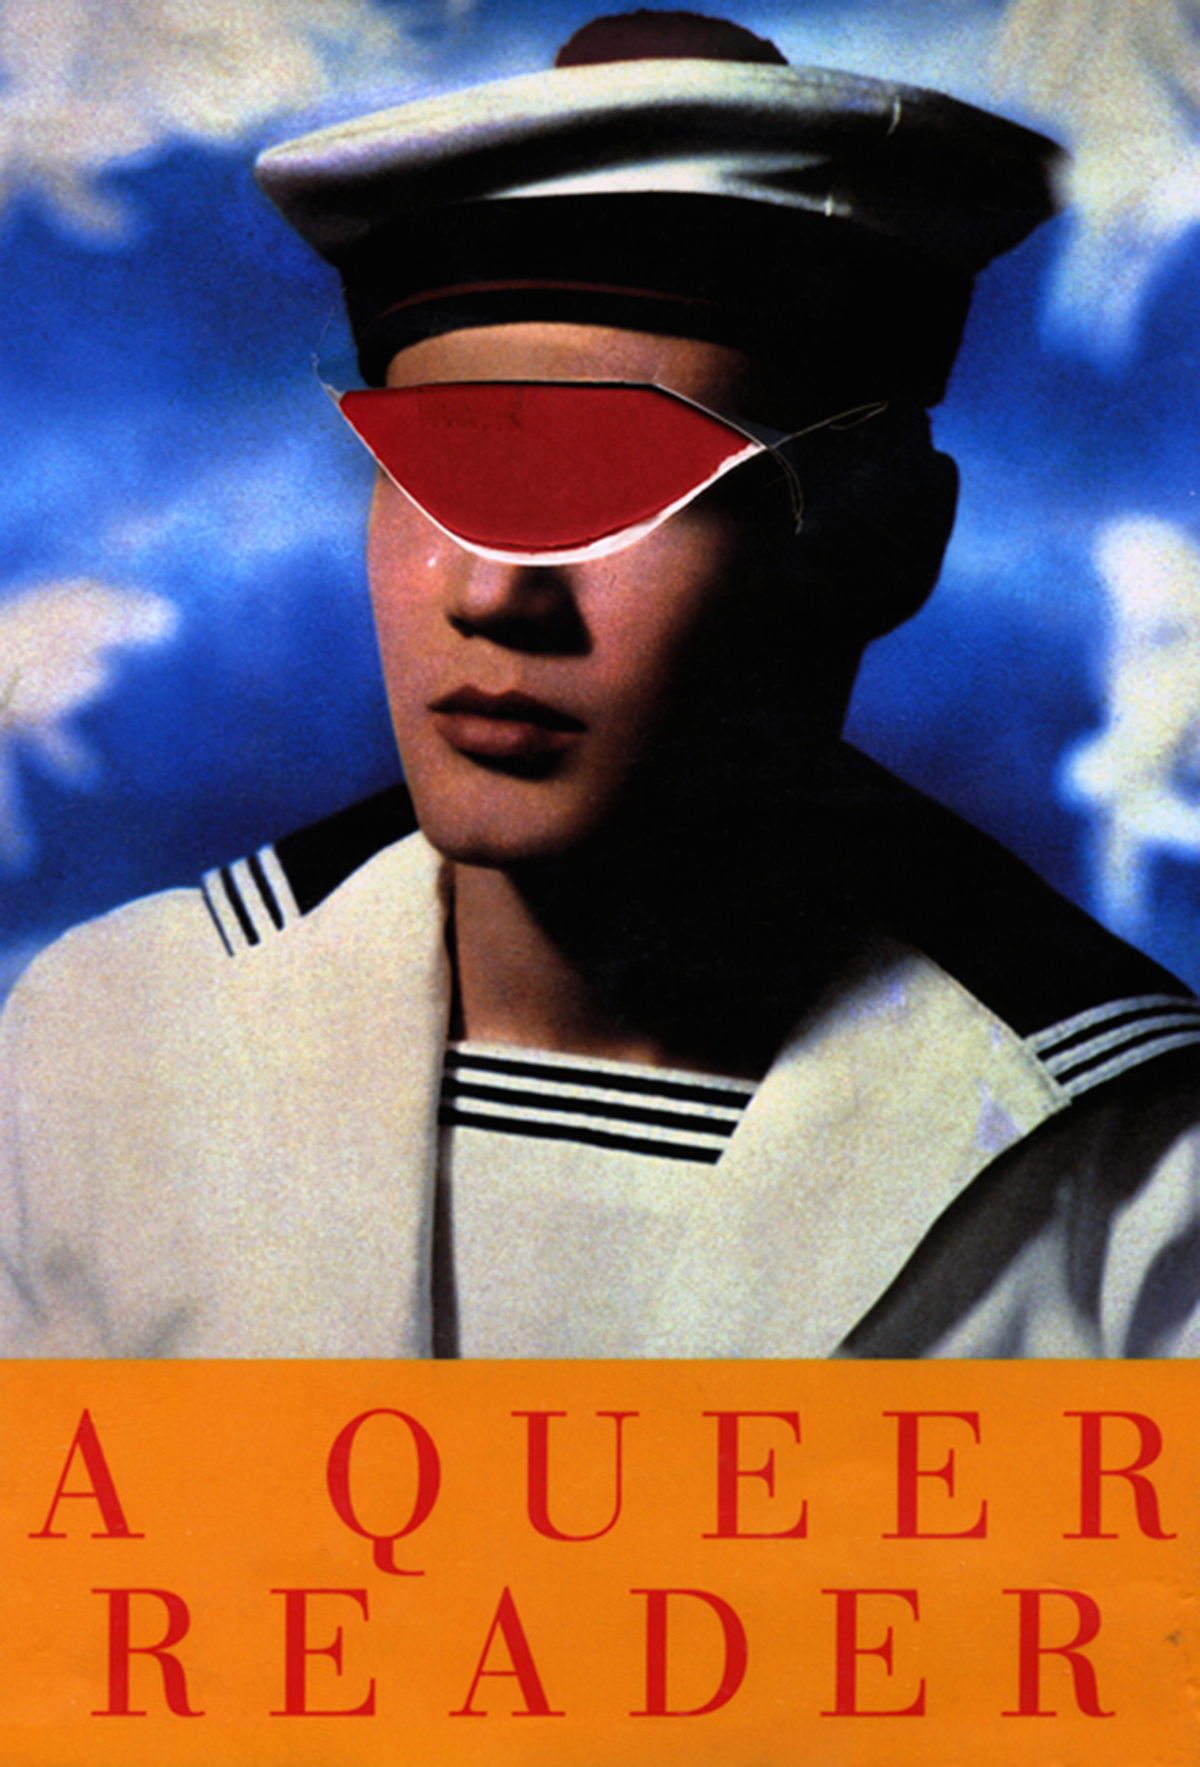 Harmony Hammond, A Queer Reader, 2010, Archival inkjet print on Museo Silver rag paper, mounted on Di-Bond with UV laminate, 43 x 29 in. Courtesy of the artist.